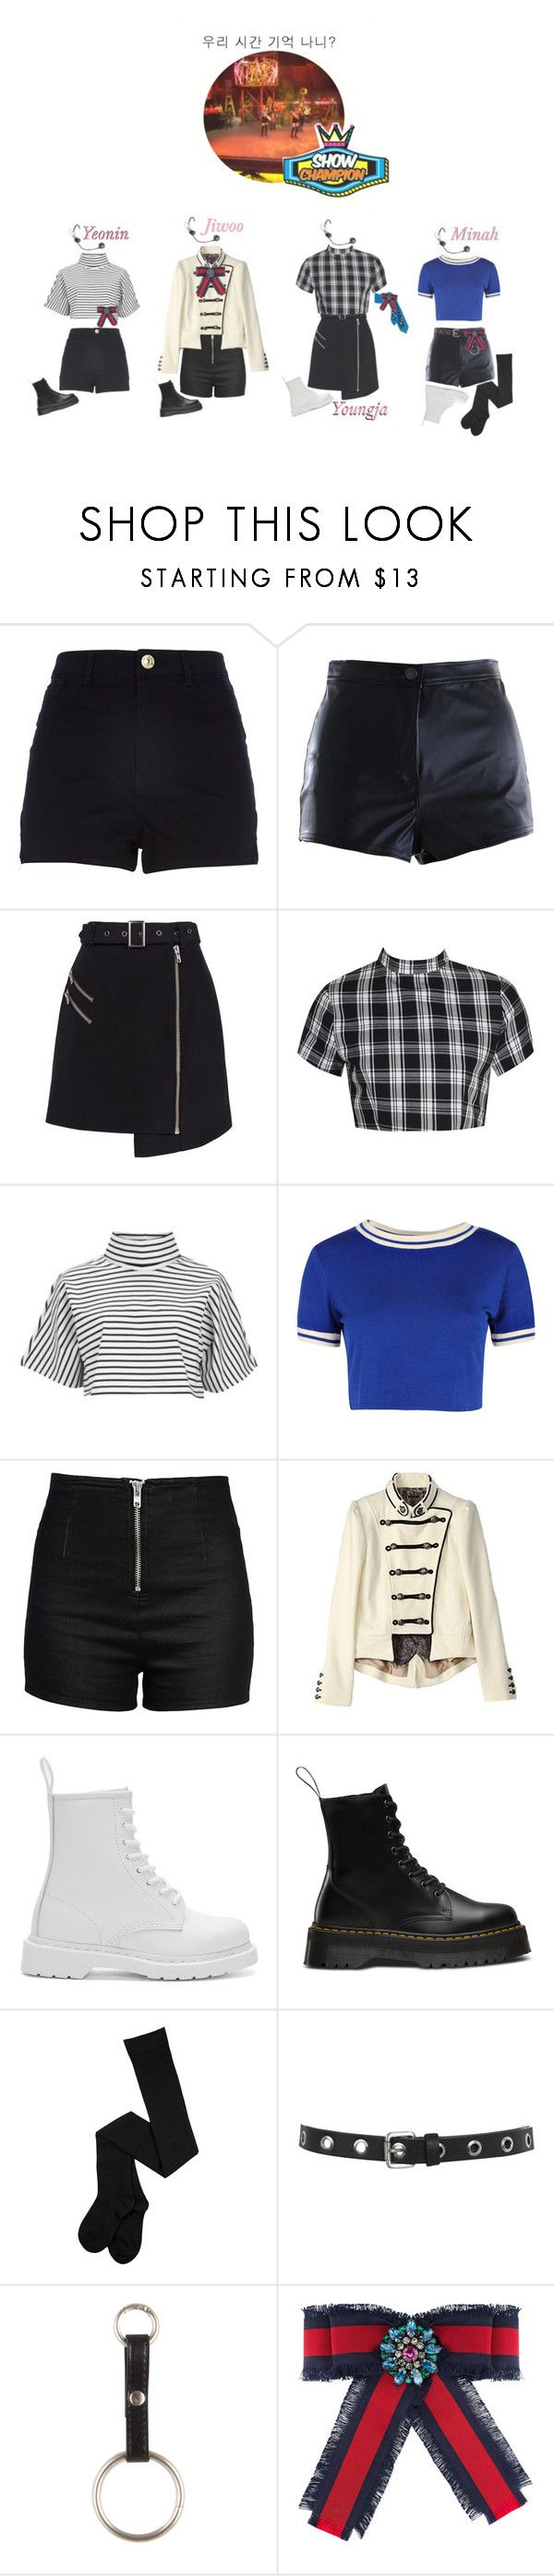 """""""《Goodbye Stage》4U - REMEMBER OUR TIME ON SHOW CHAMPION"""" by official4u ❤ liked on Polyvore featuring River Island, Cameo, Boohoo, The Fifth Label, Love Moschino, Dr. Martens, Miss Selfridge and Gucci"""